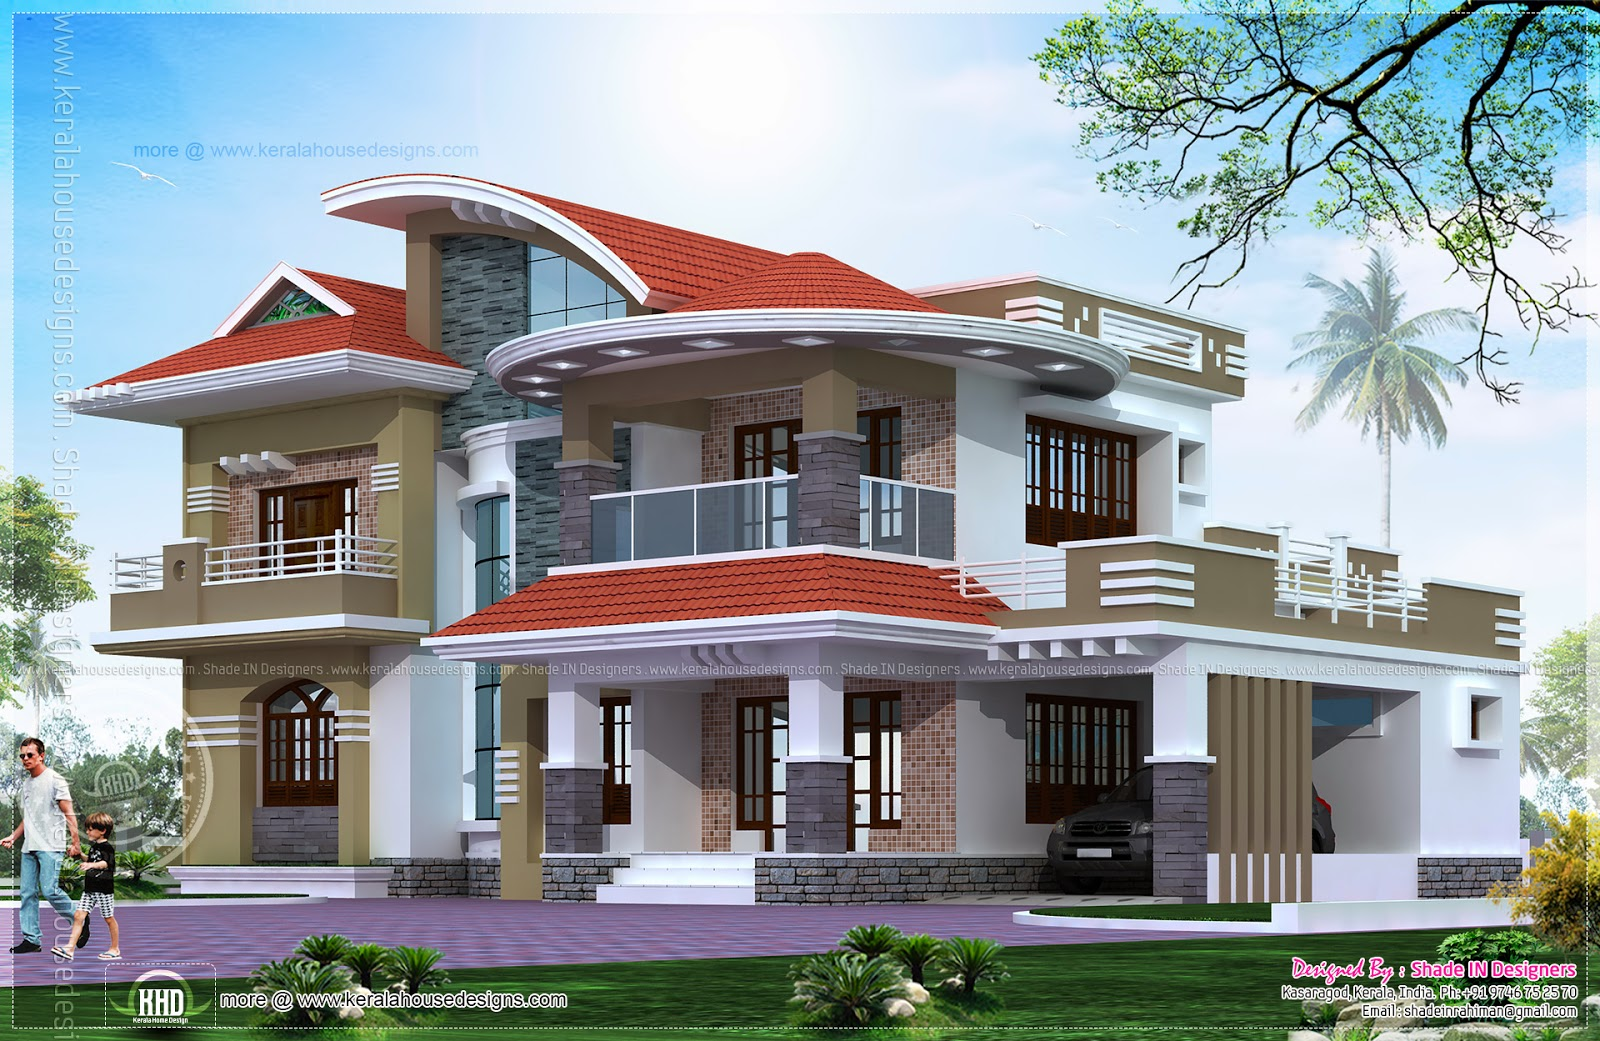 5 bedroom luxury house in kasaragod kerala home design for Kerala 3d home floor plans